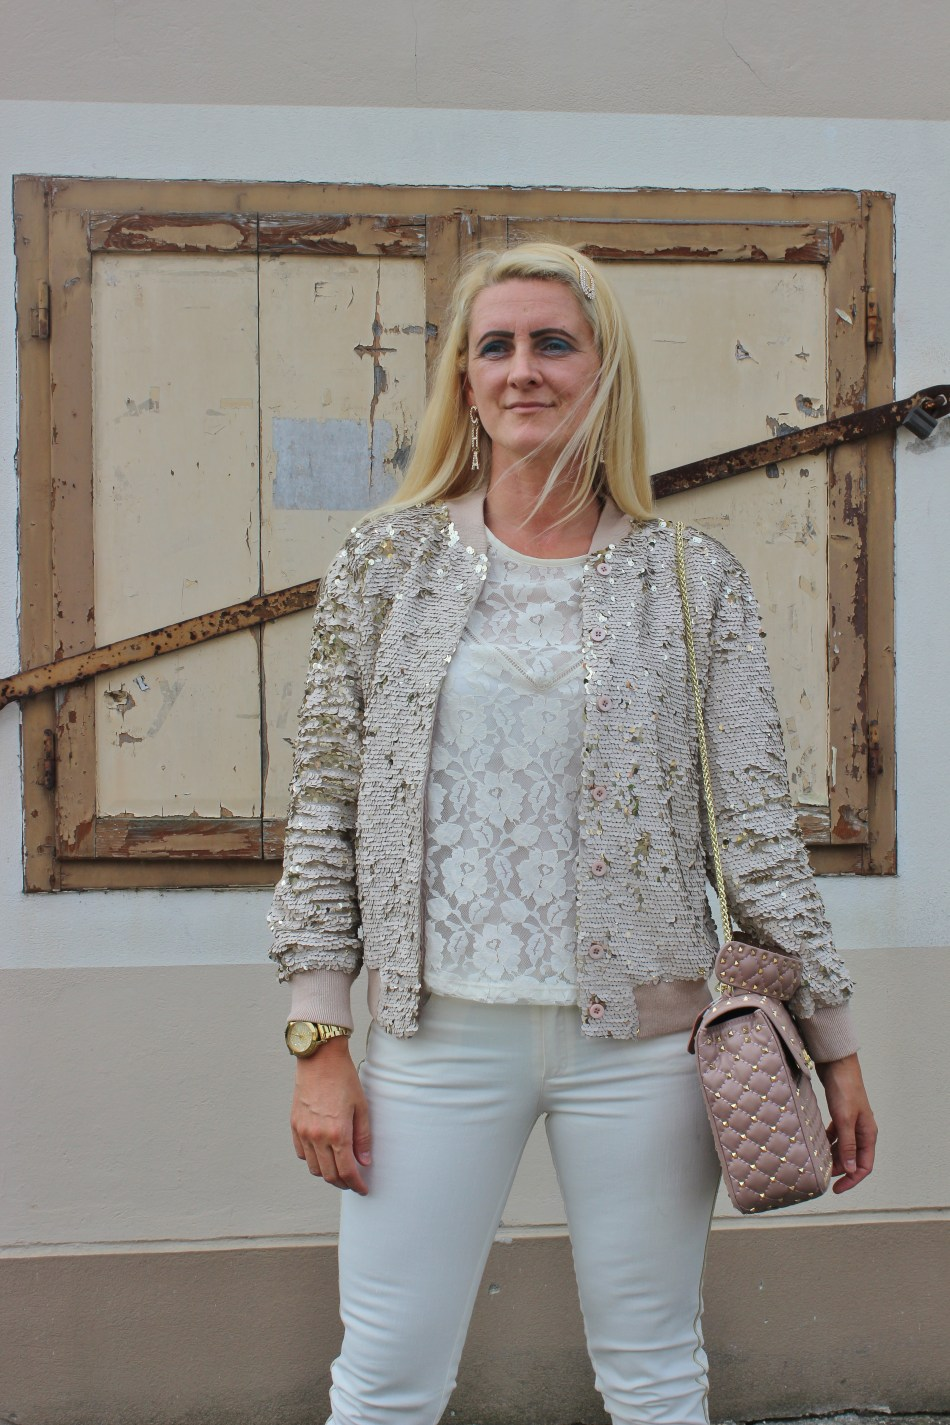 Pailletten-Bomberjacke-Strappy-Heels-Allinwhite-Valentino-Rockstud-Bag-carrieslifestyle-Tamara-Prutsch-Lace-Top